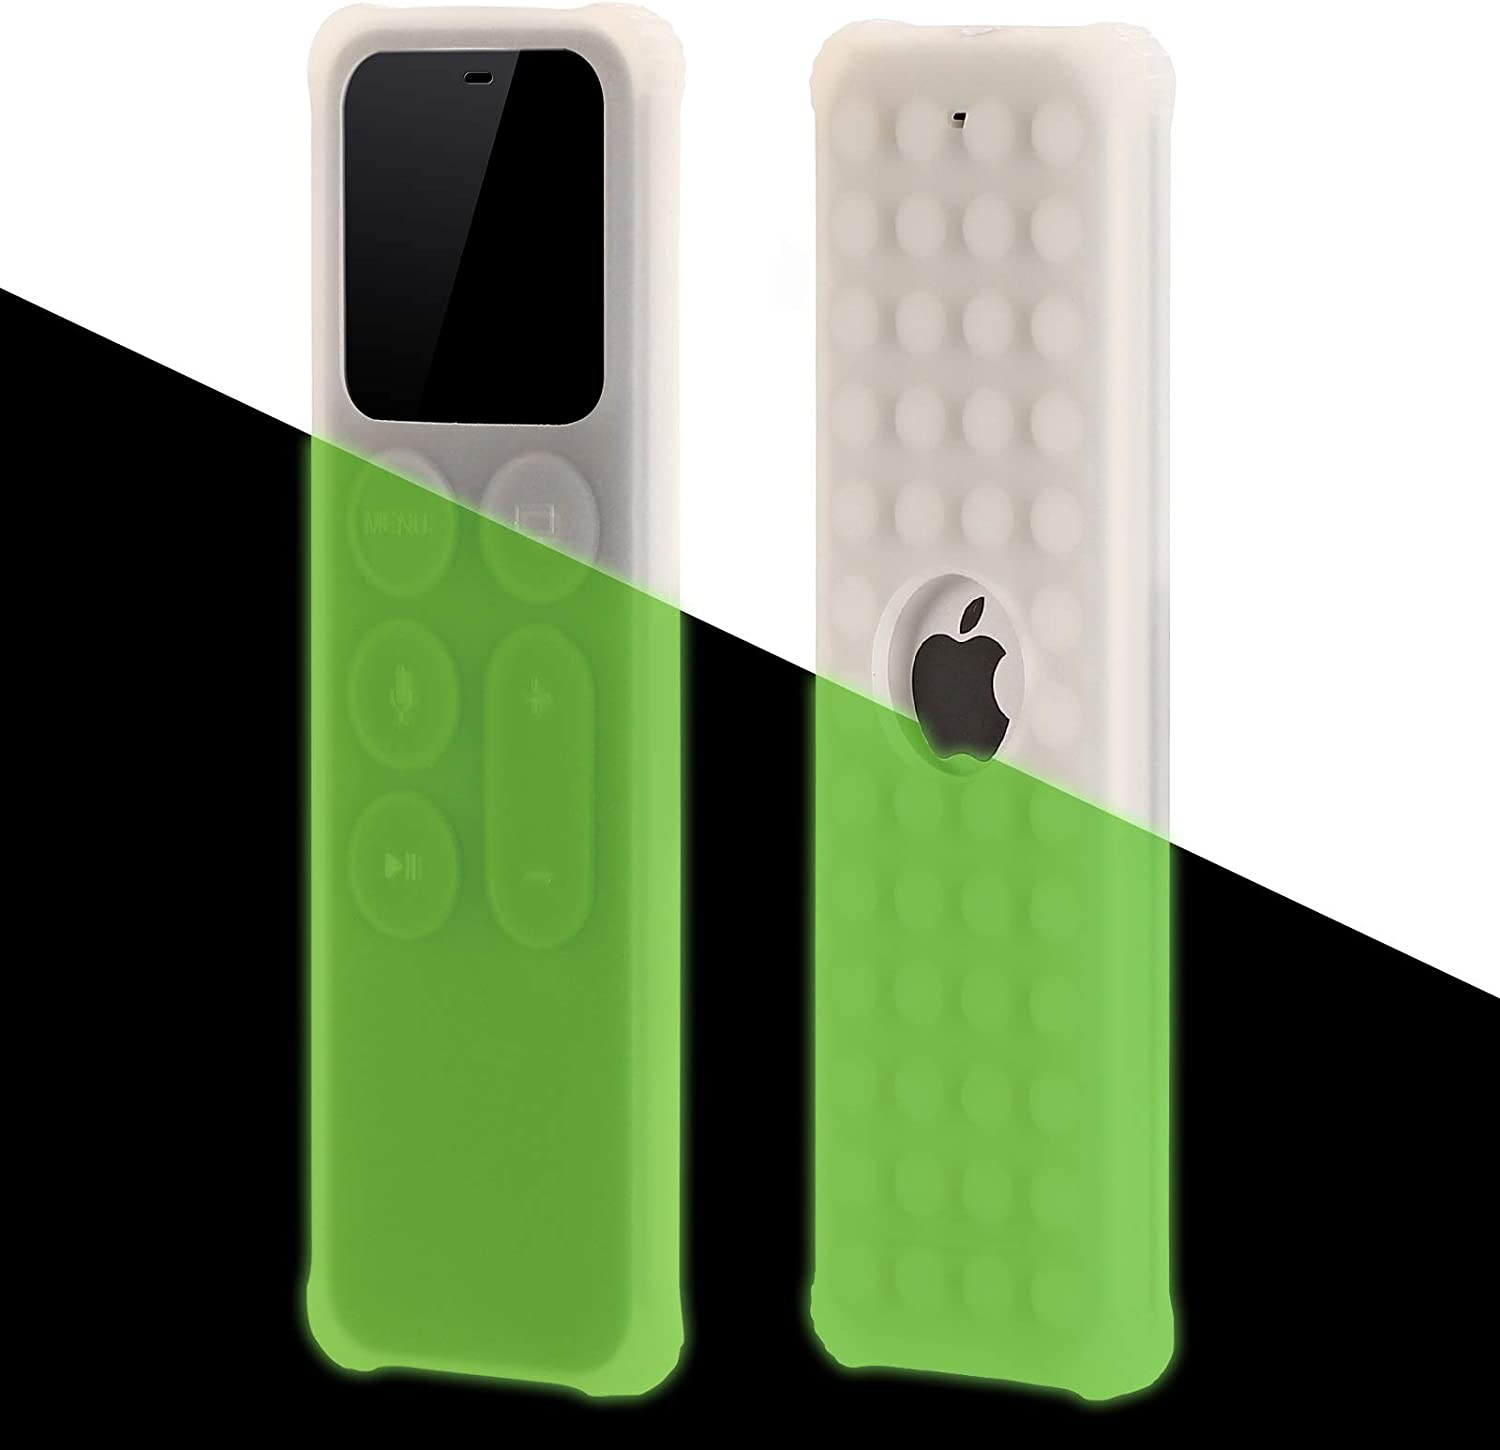 BUJIDAO Protective Case for Apple TV Siri 4K 5th / 4th Gen Remote, Protective Silicone Remote Cover for Apple TV Siri Remote Controller Lightweight Anti Slip Shock Proof (Glow Green)